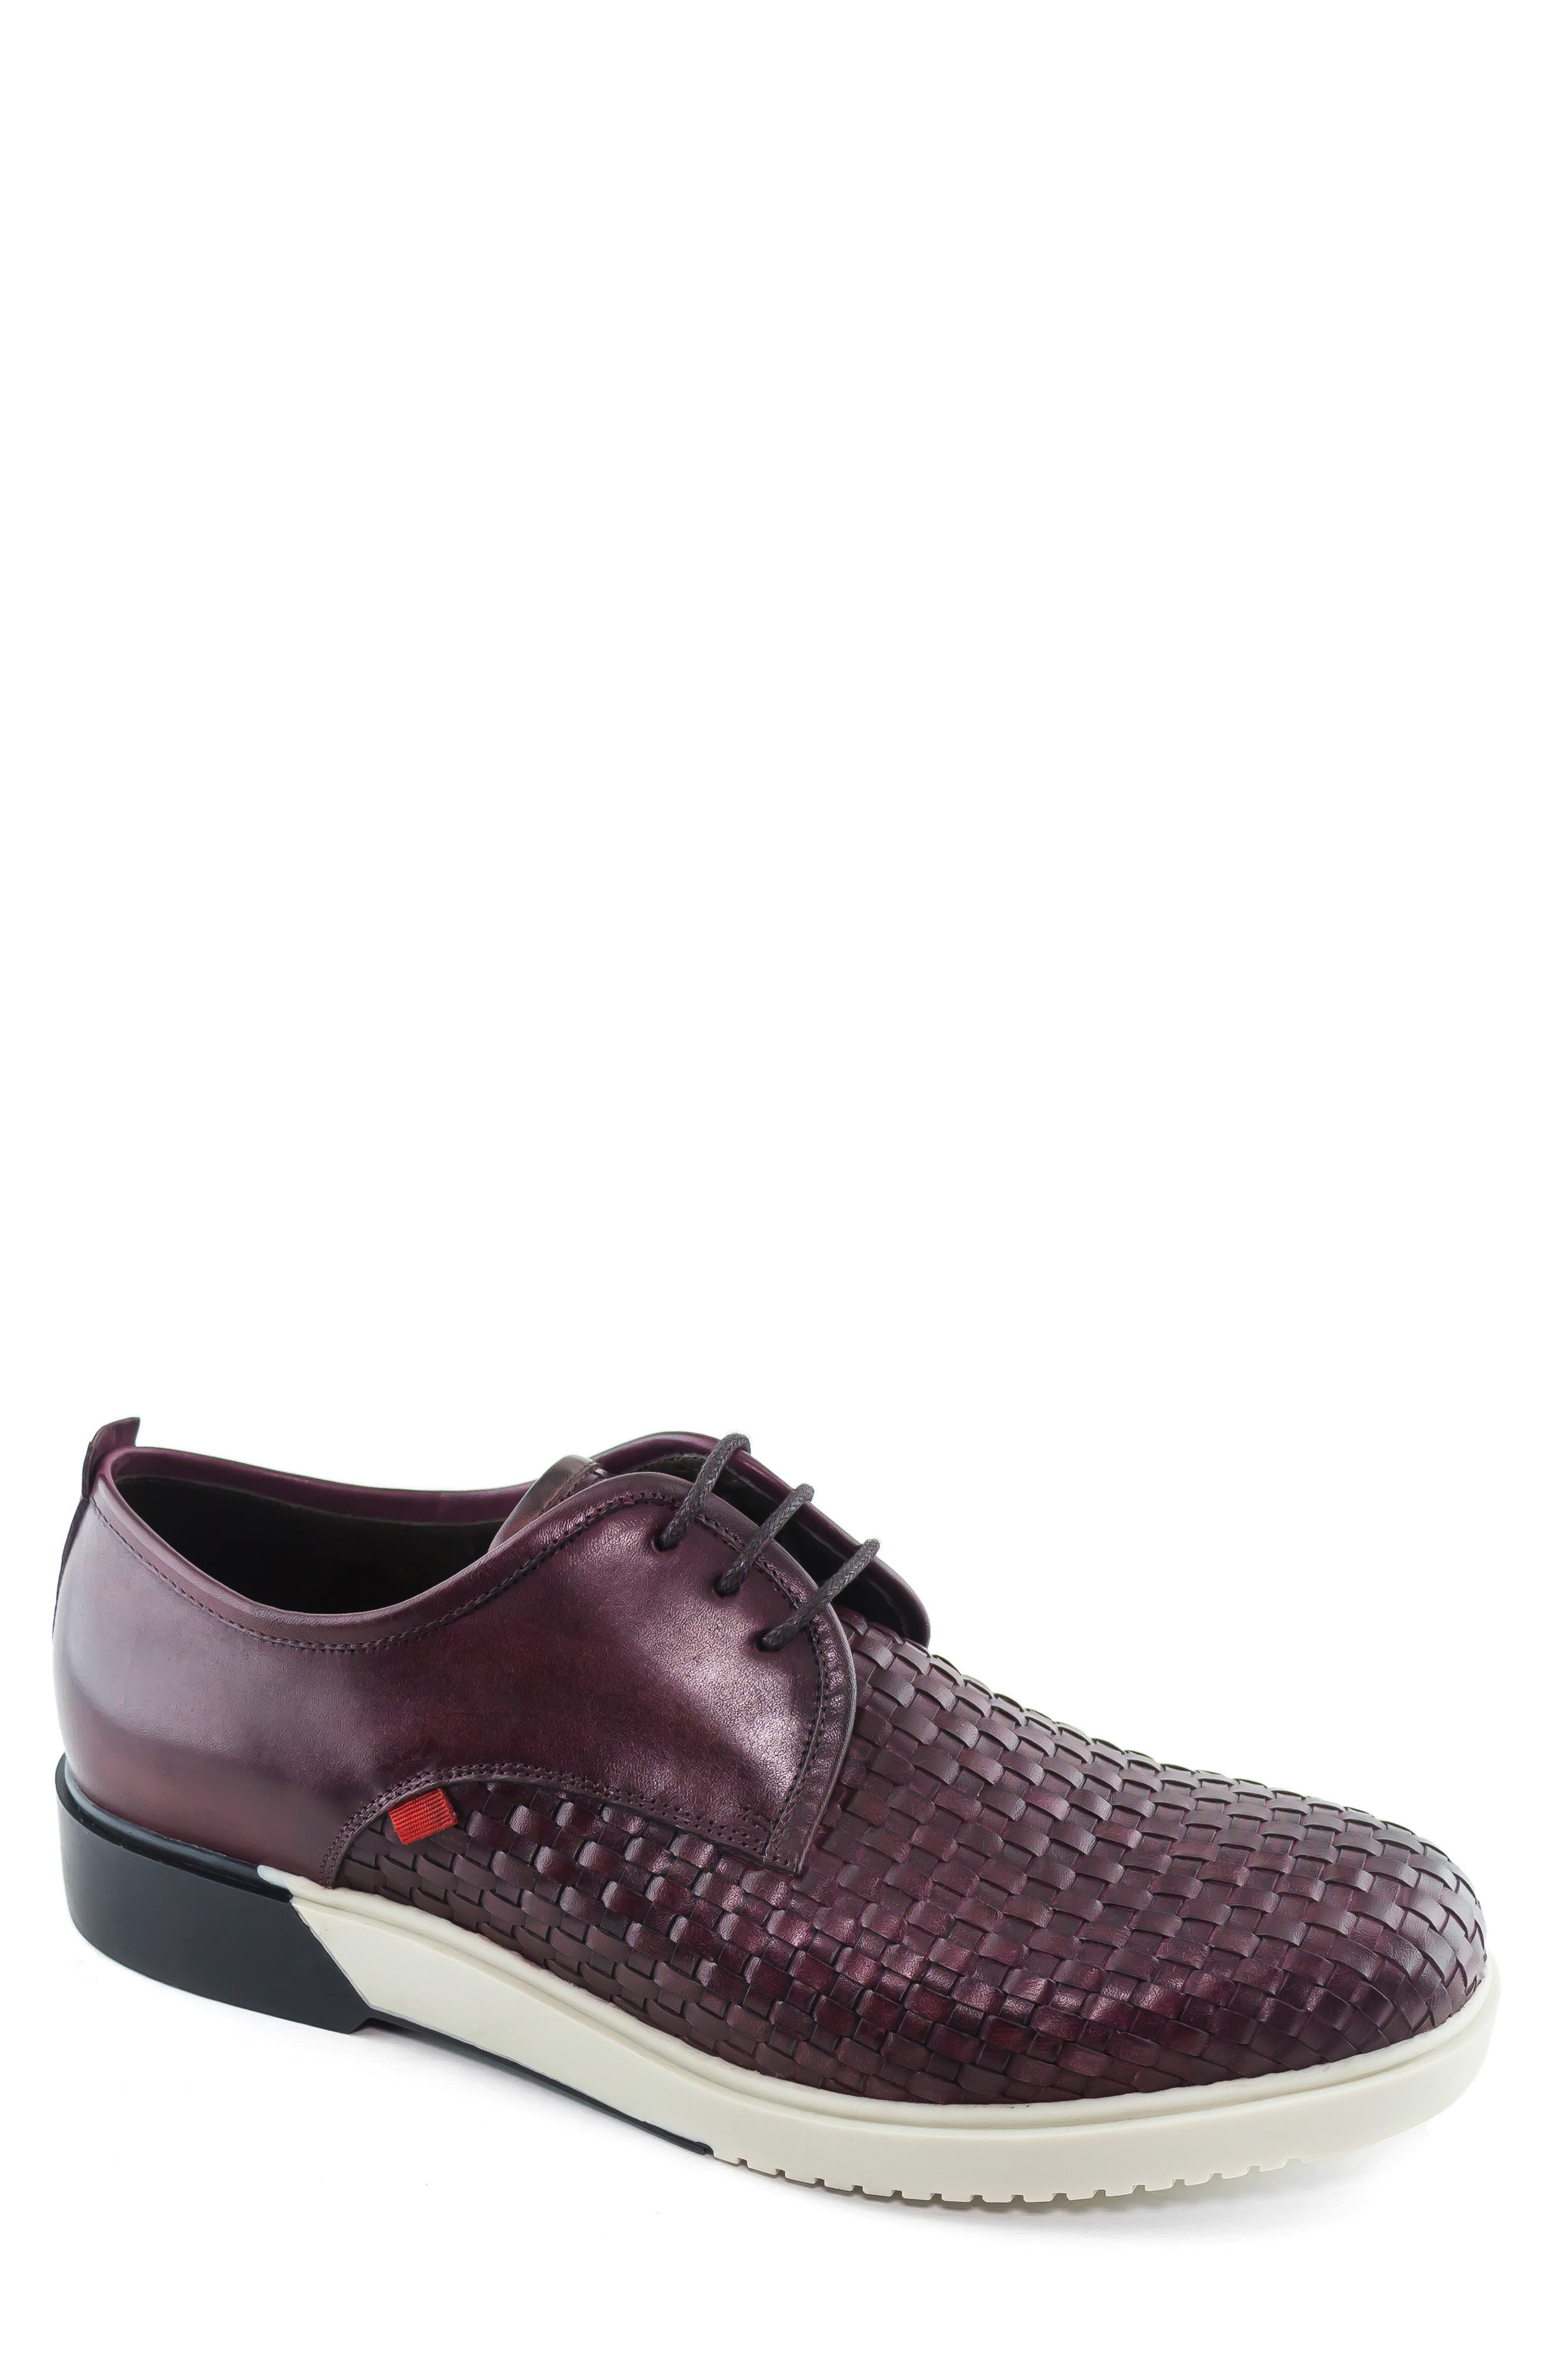 MARC JOSEPH NEW YORK, Tribeca Woven Derby, Main thumbnail 1, color, 930